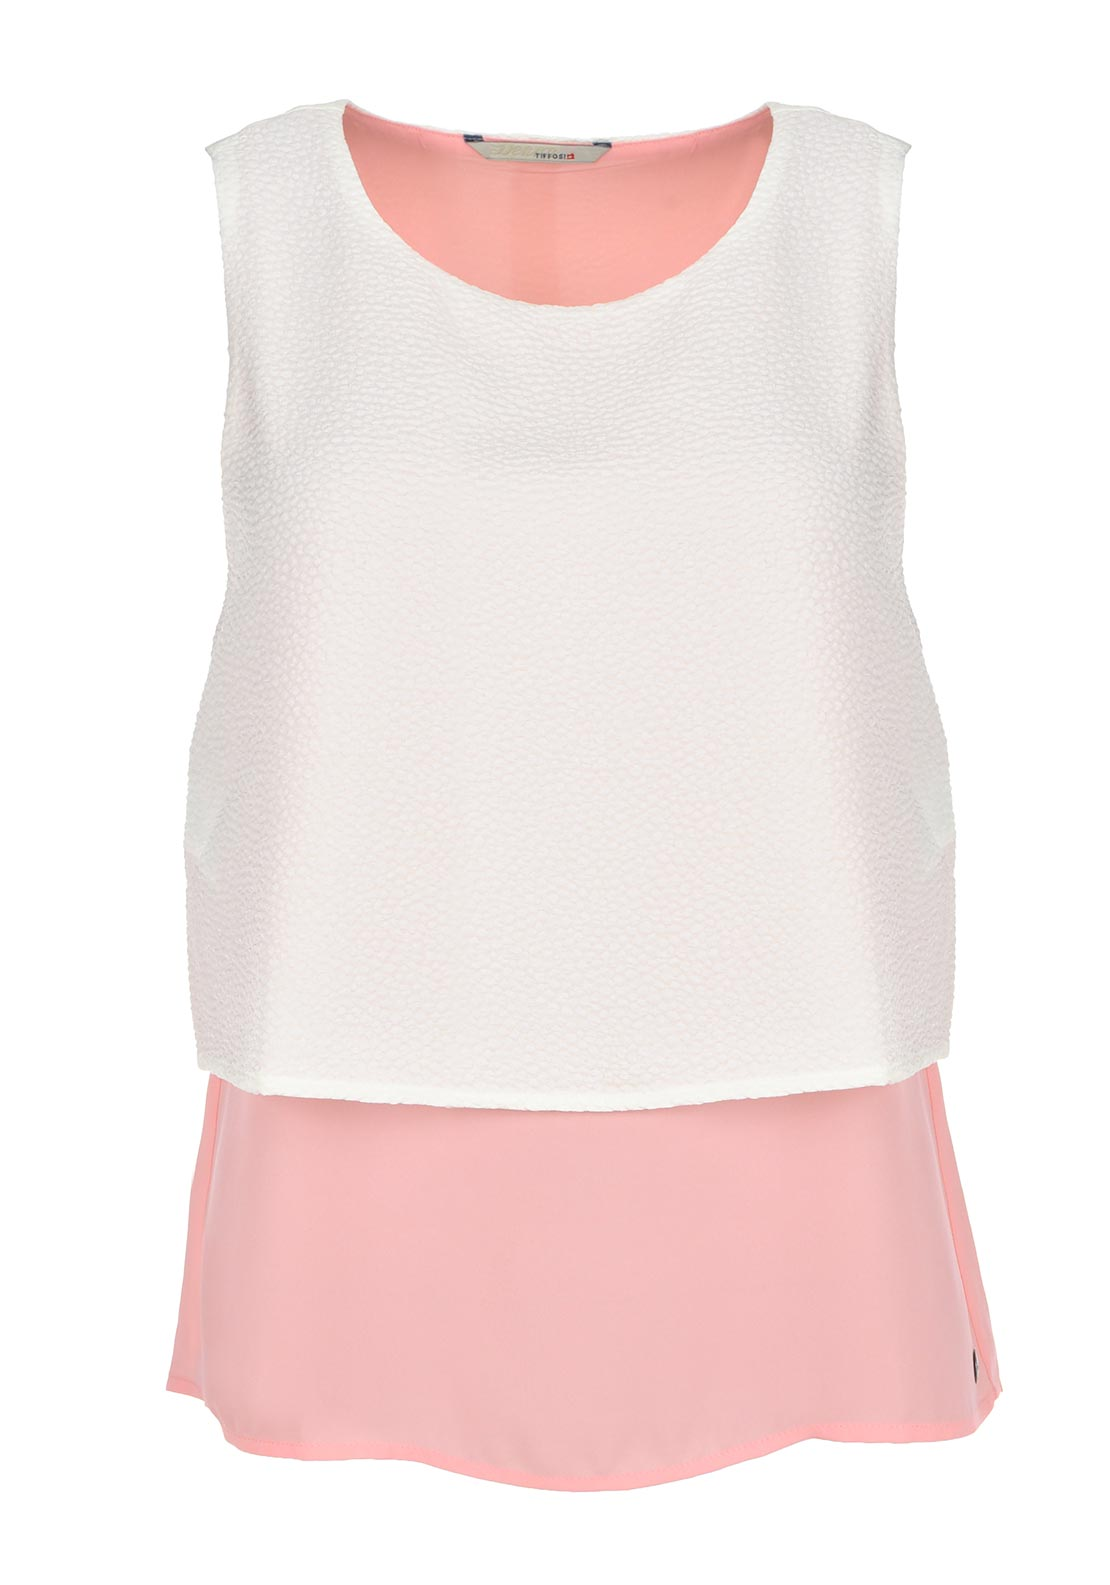 Tiffosi Embossed 2-in-1 Sleeveless Top, Pink and Cream